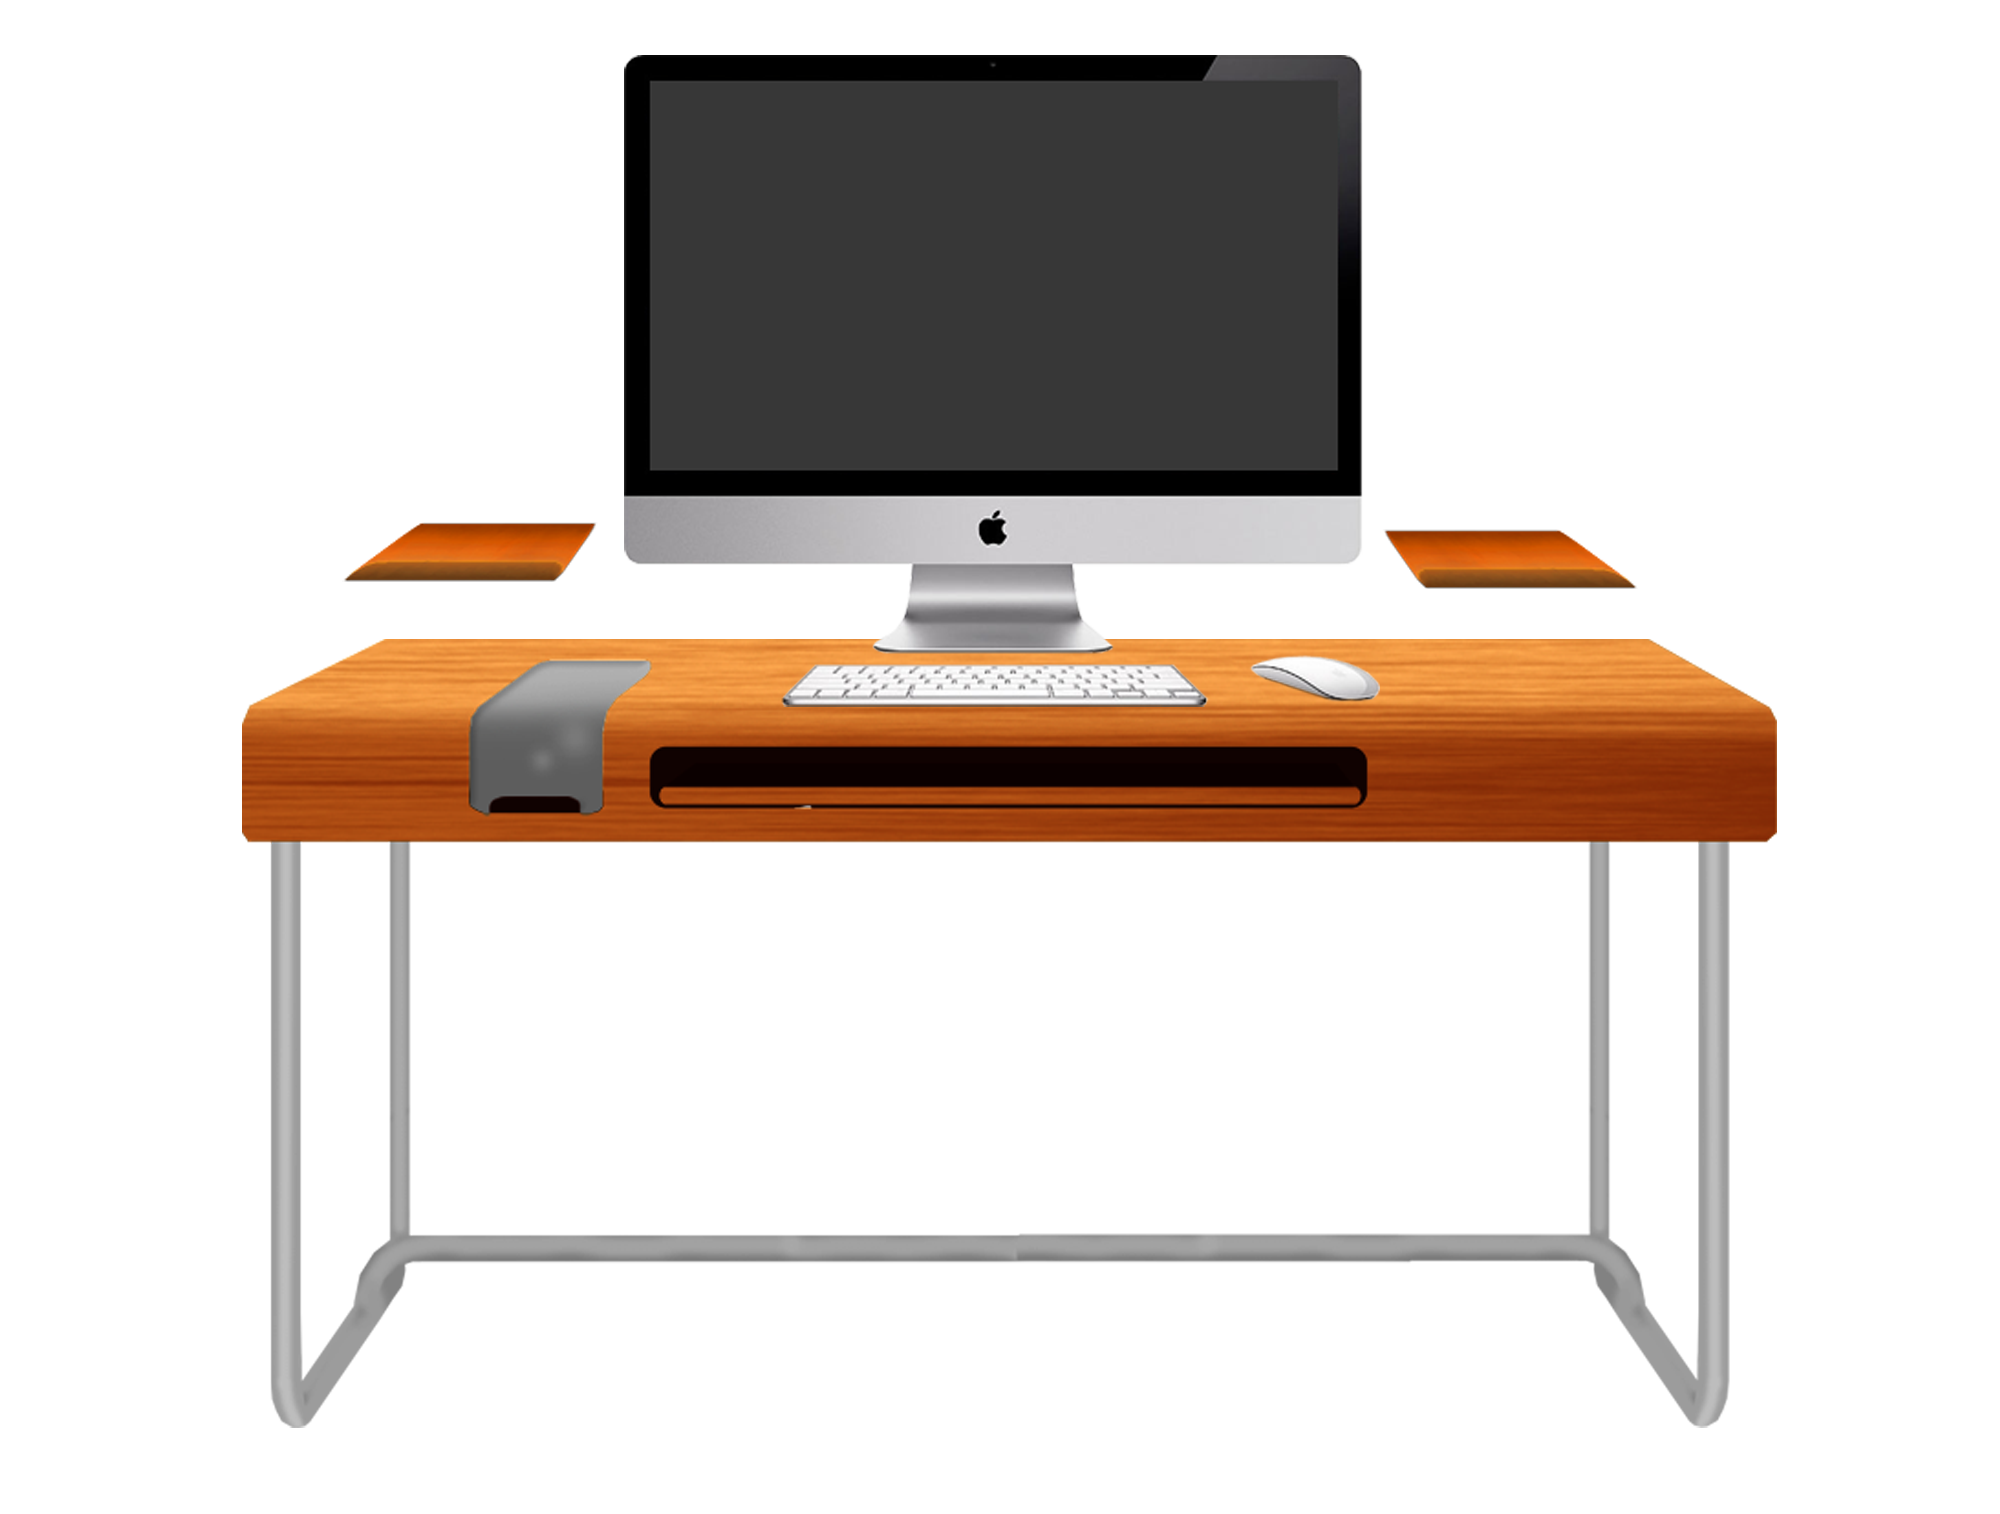 Modern Orange Computer Desk Design With Black Keyboard And